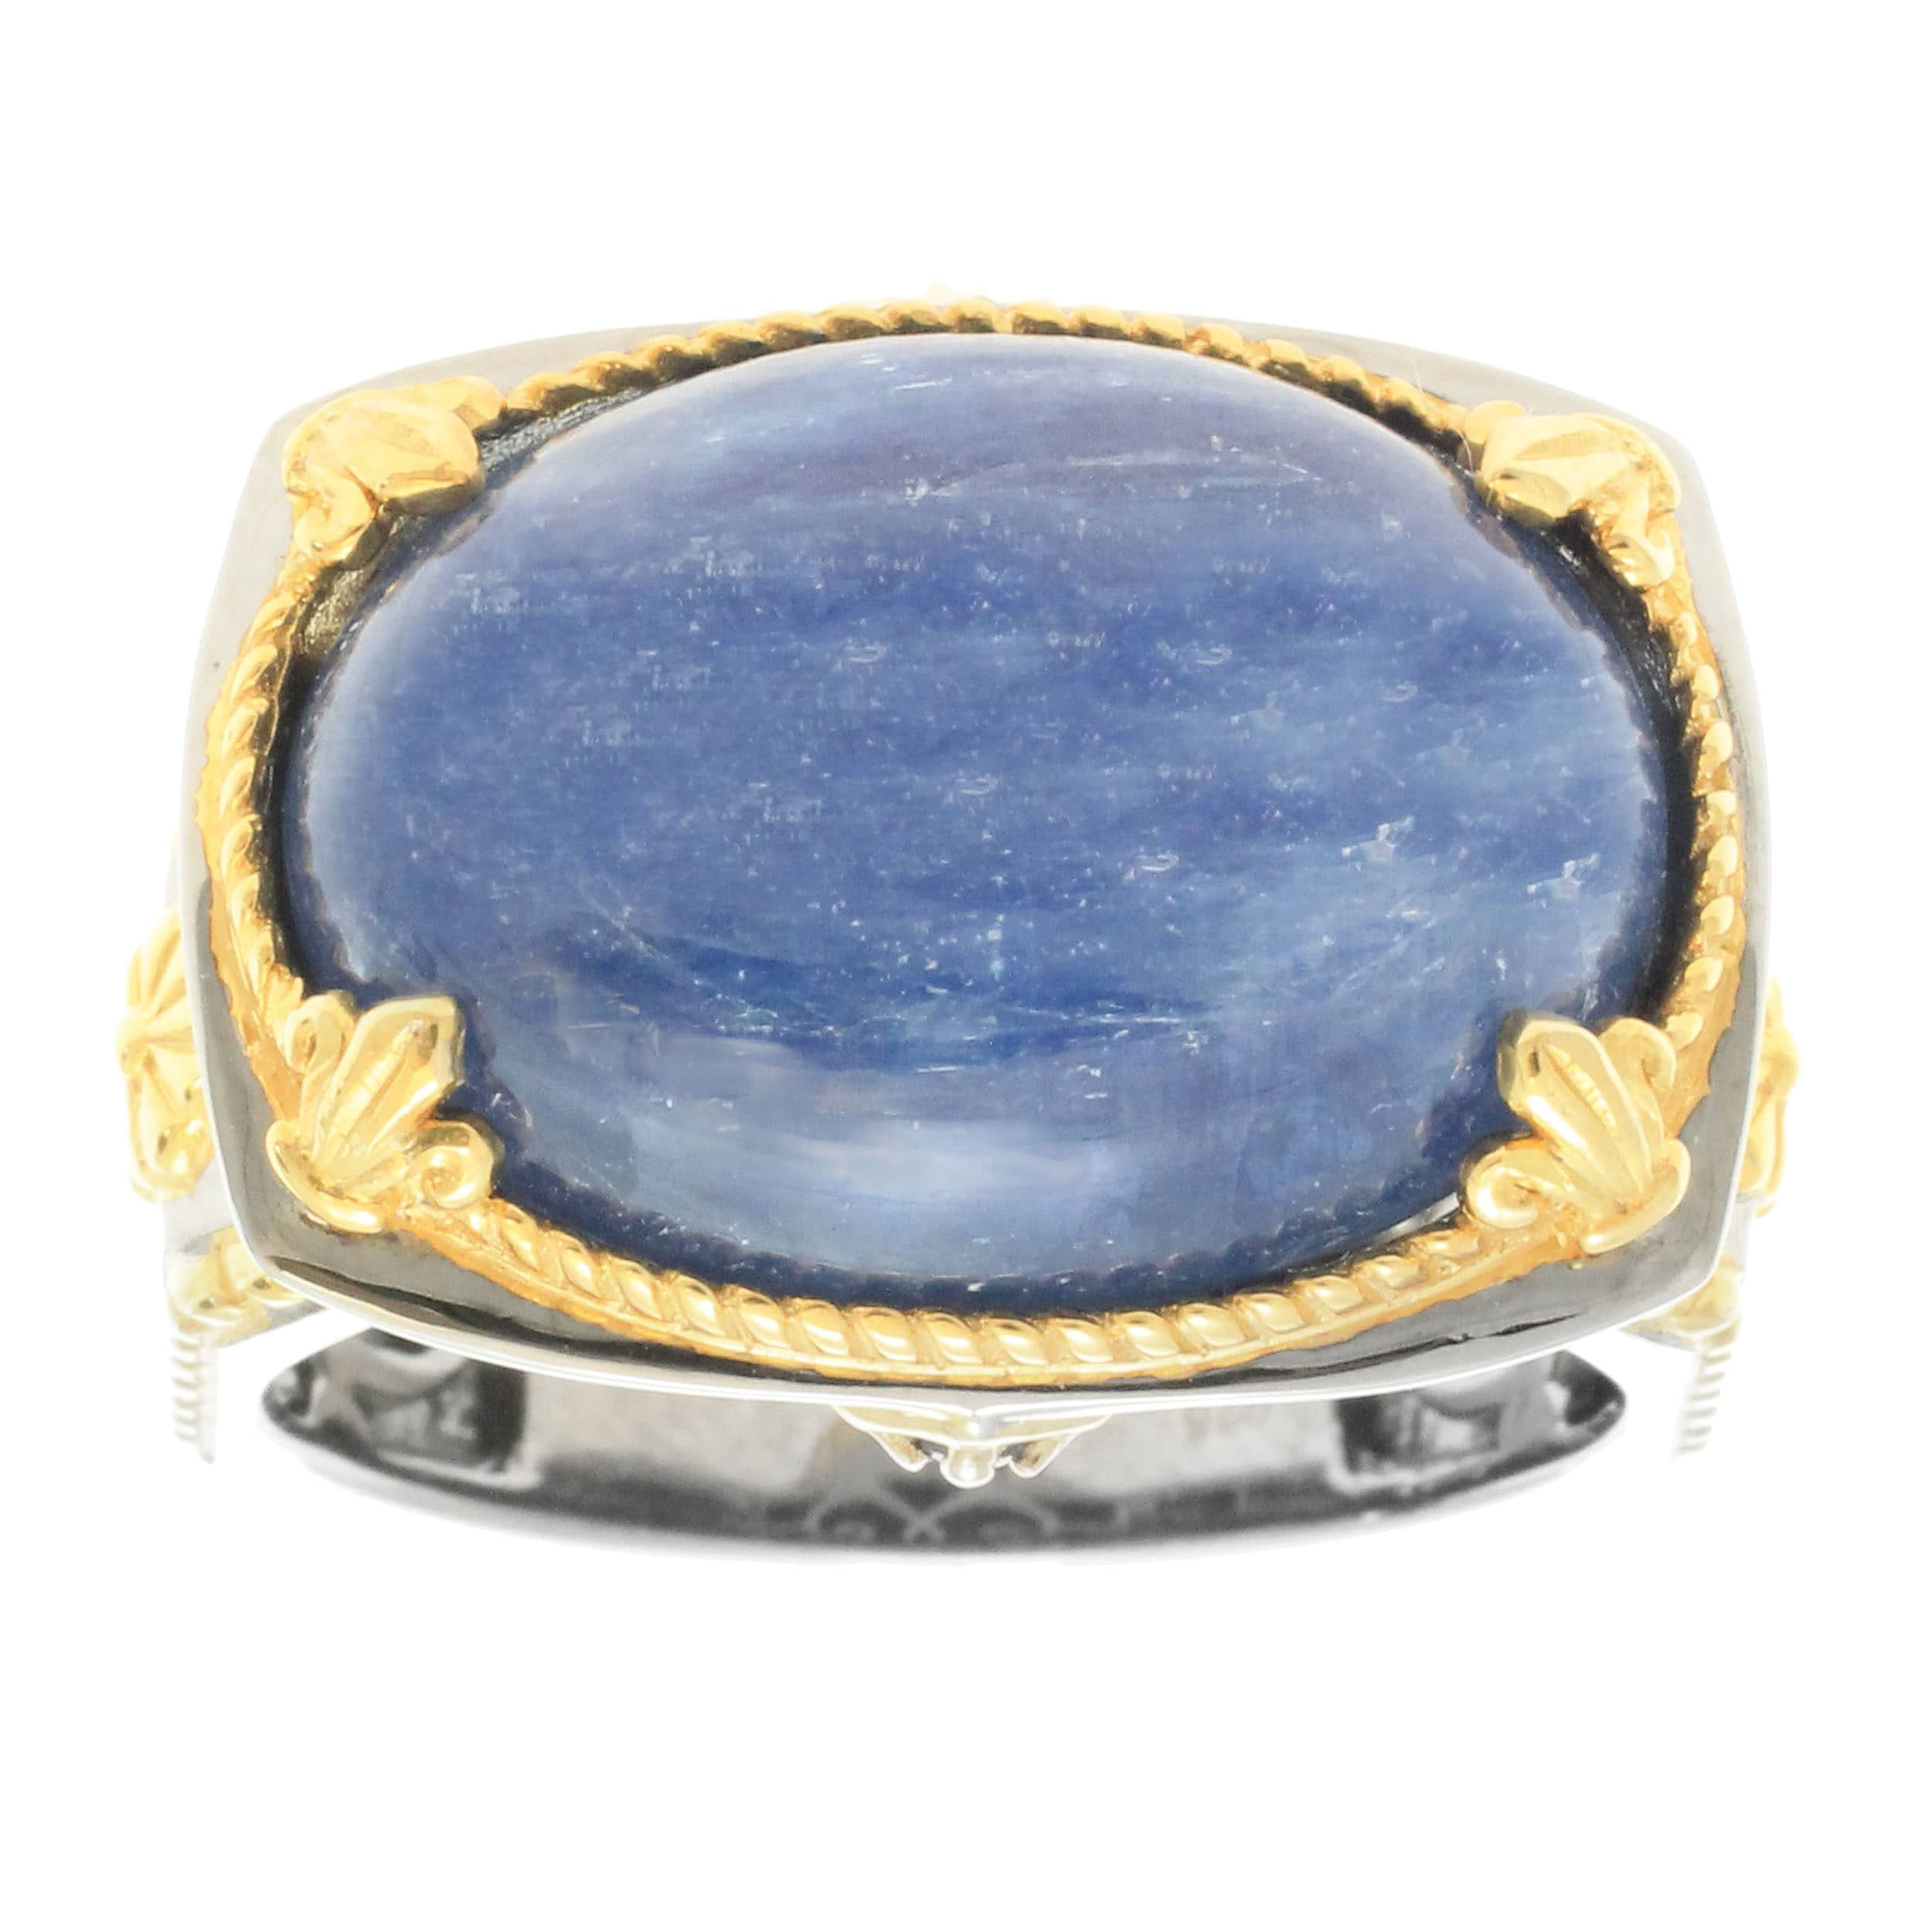 rings d sterling shungite blue stering products s silver the kyanite jewellery experience ring